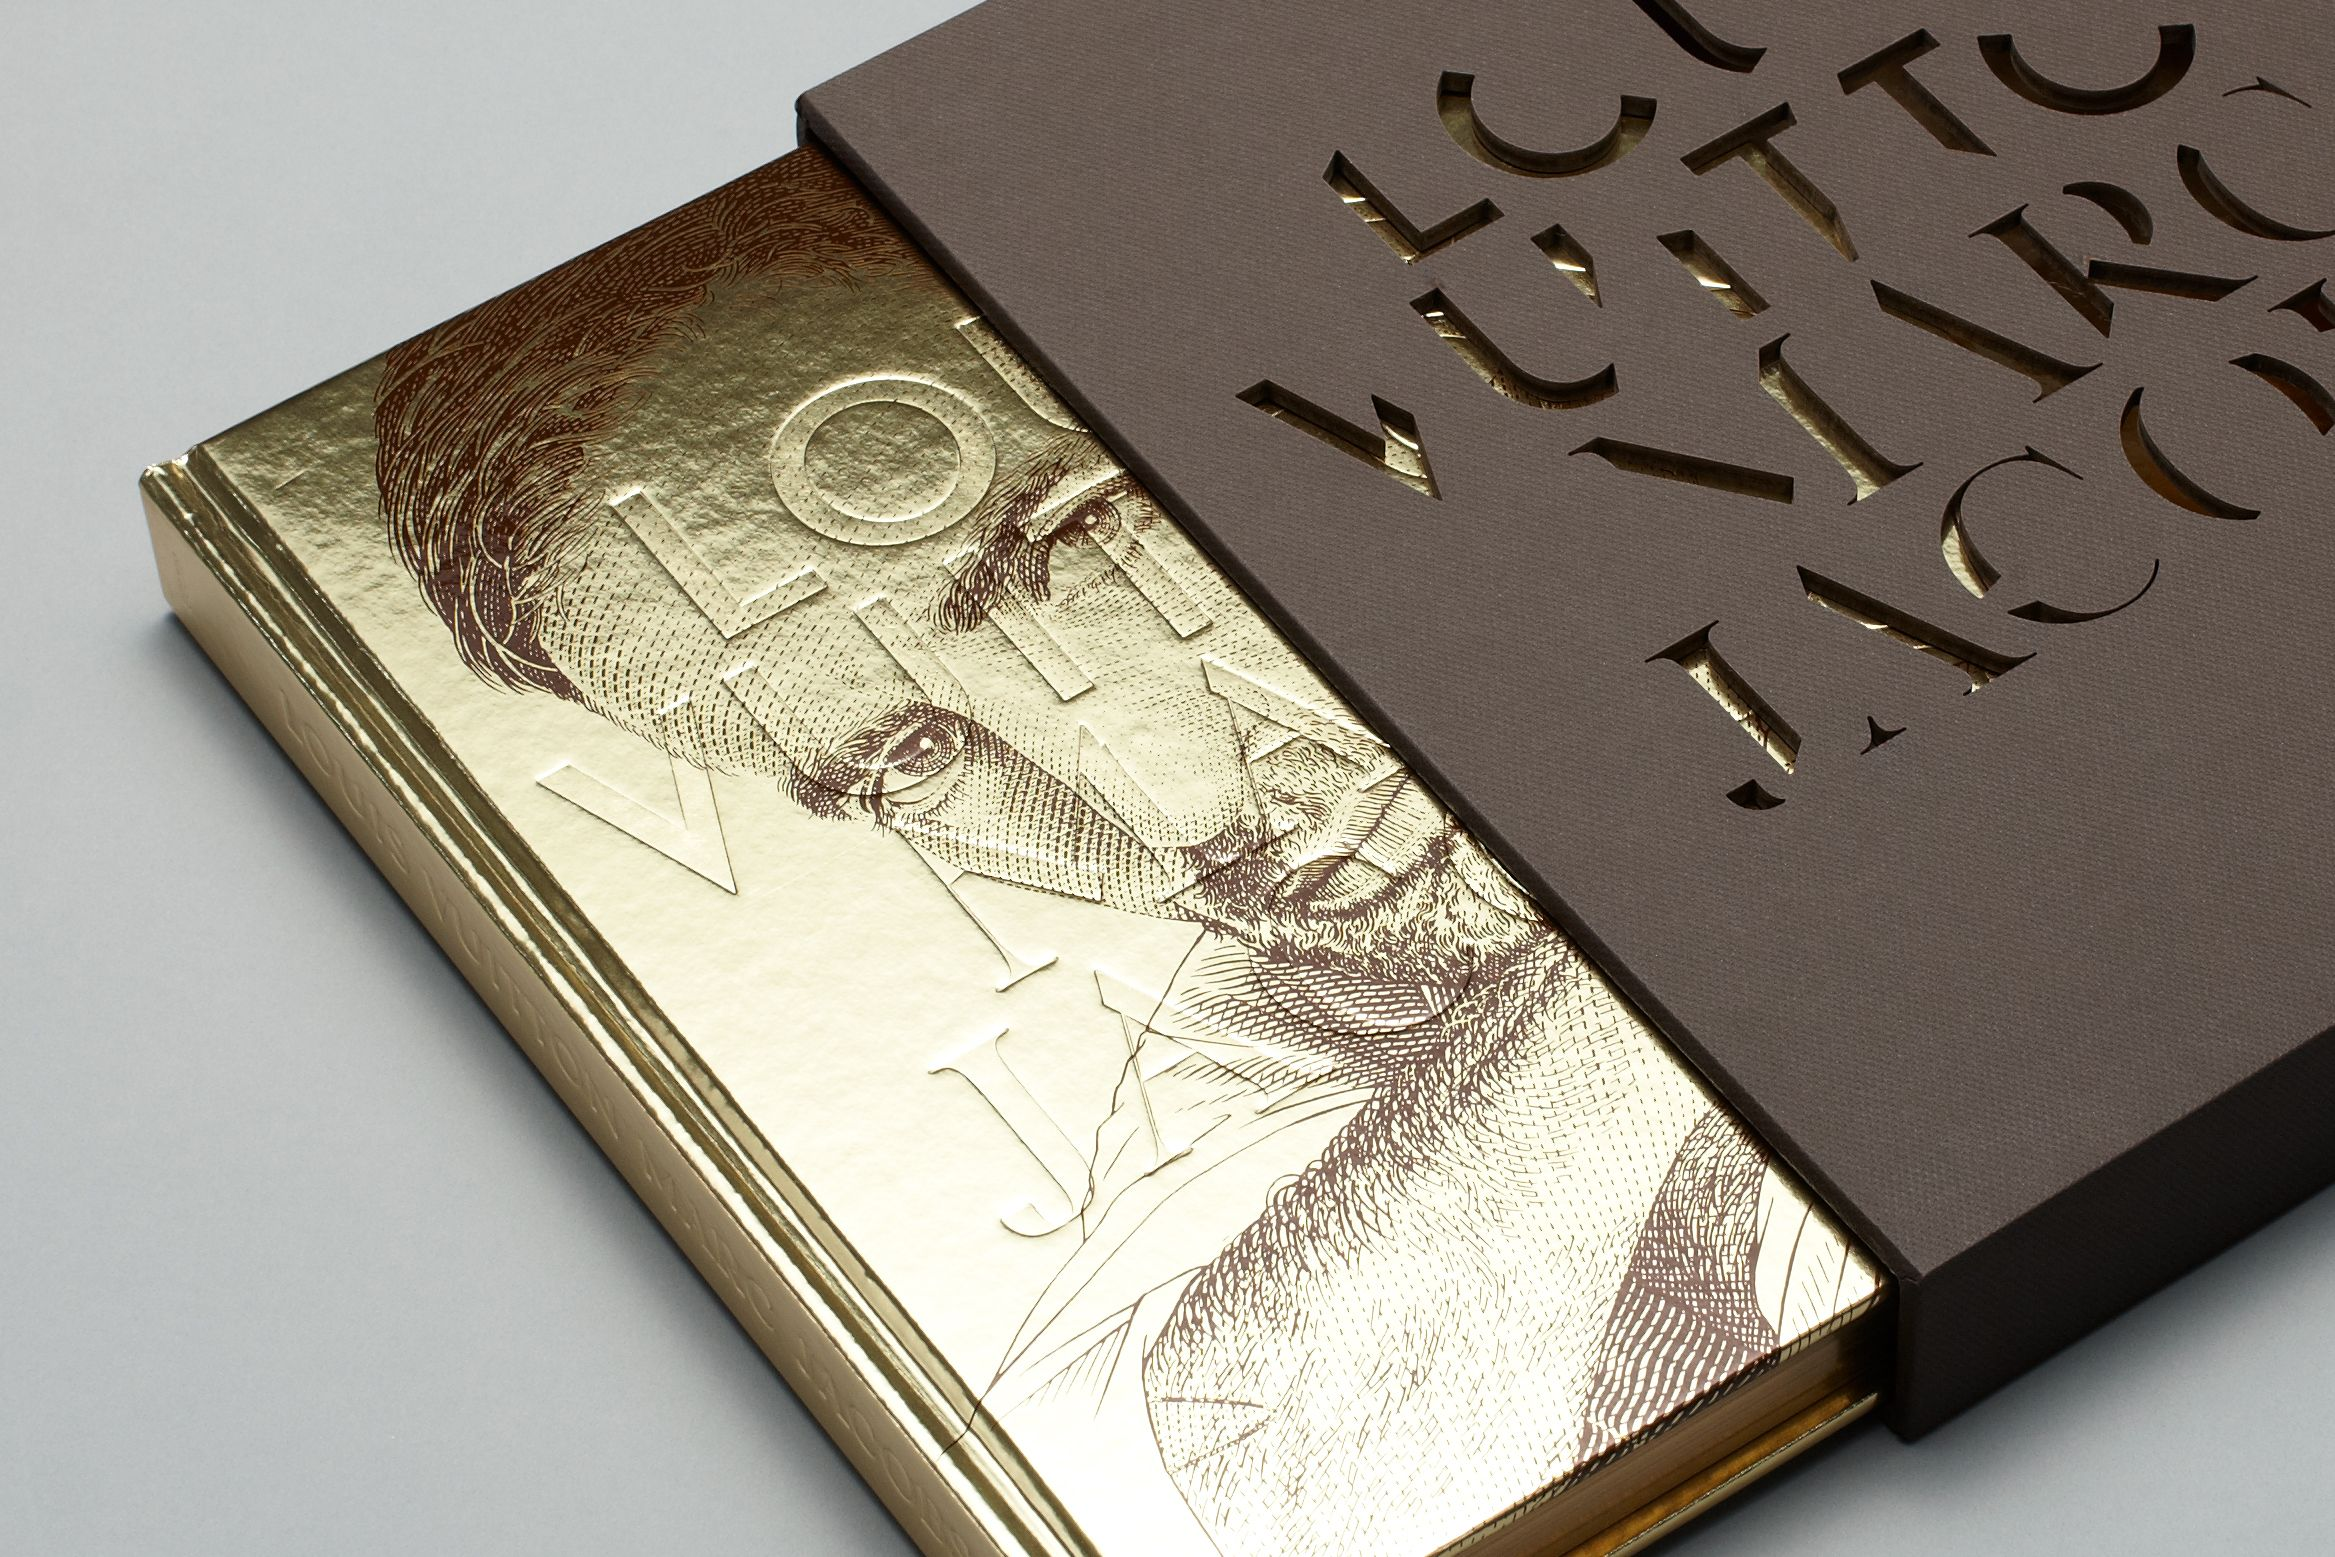 Image of Louis Vuitton Marc Jacobs book cover in gold foil with die cut slipcase